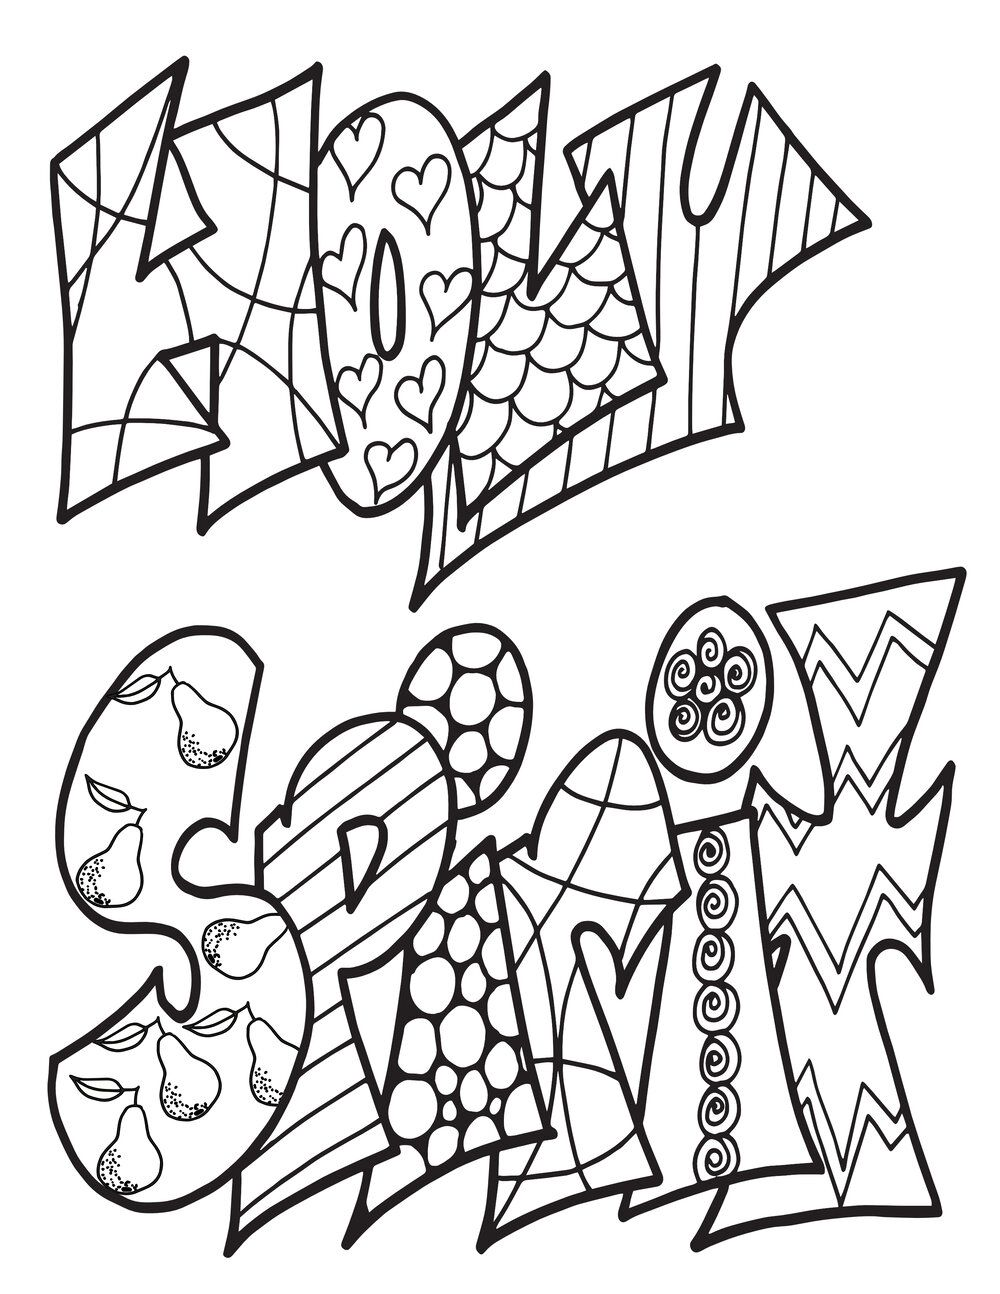 HOLY SPIRIT CLASSIC DOODLE - Free Coloring Page in 2020 ...